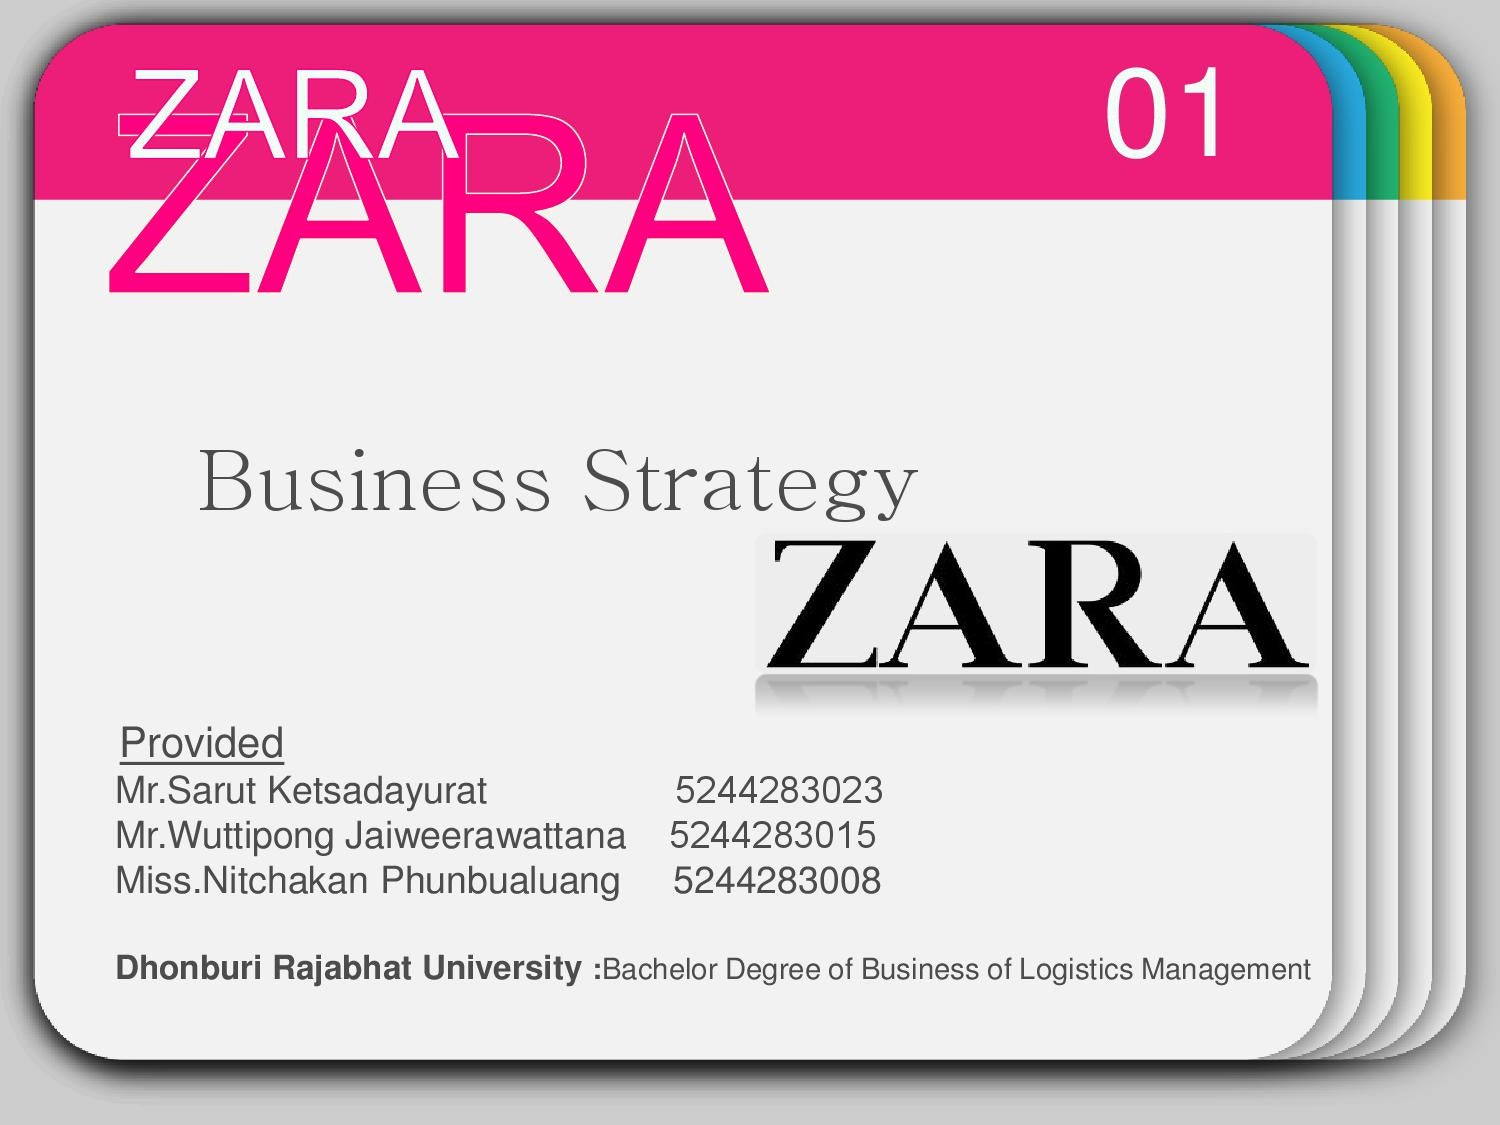 strategic management for zara Read this essay on https: //wwwacademiaedu/5492552/the strategic management analysis of zara relative to the case in developing countries come browse our large.